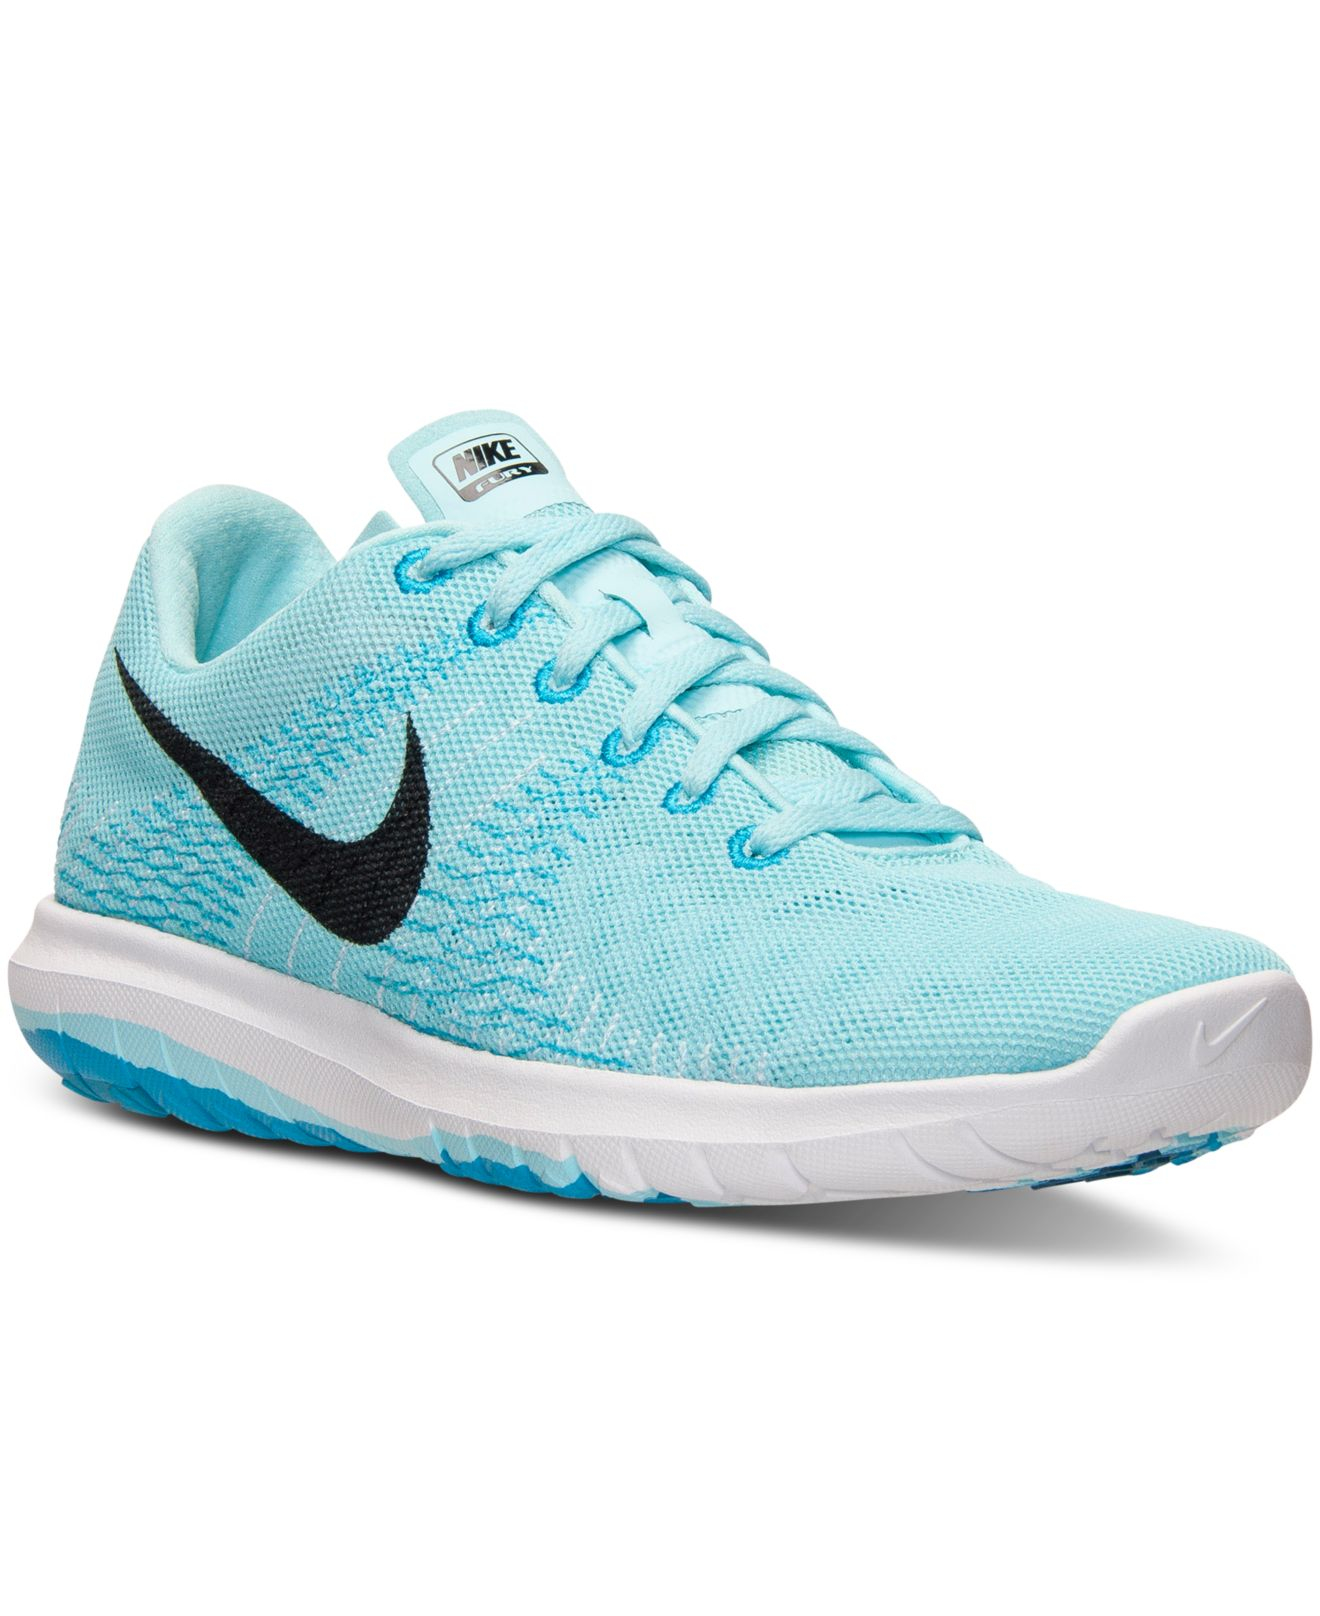 Nike Women'S Flex Fury Running Shoe -